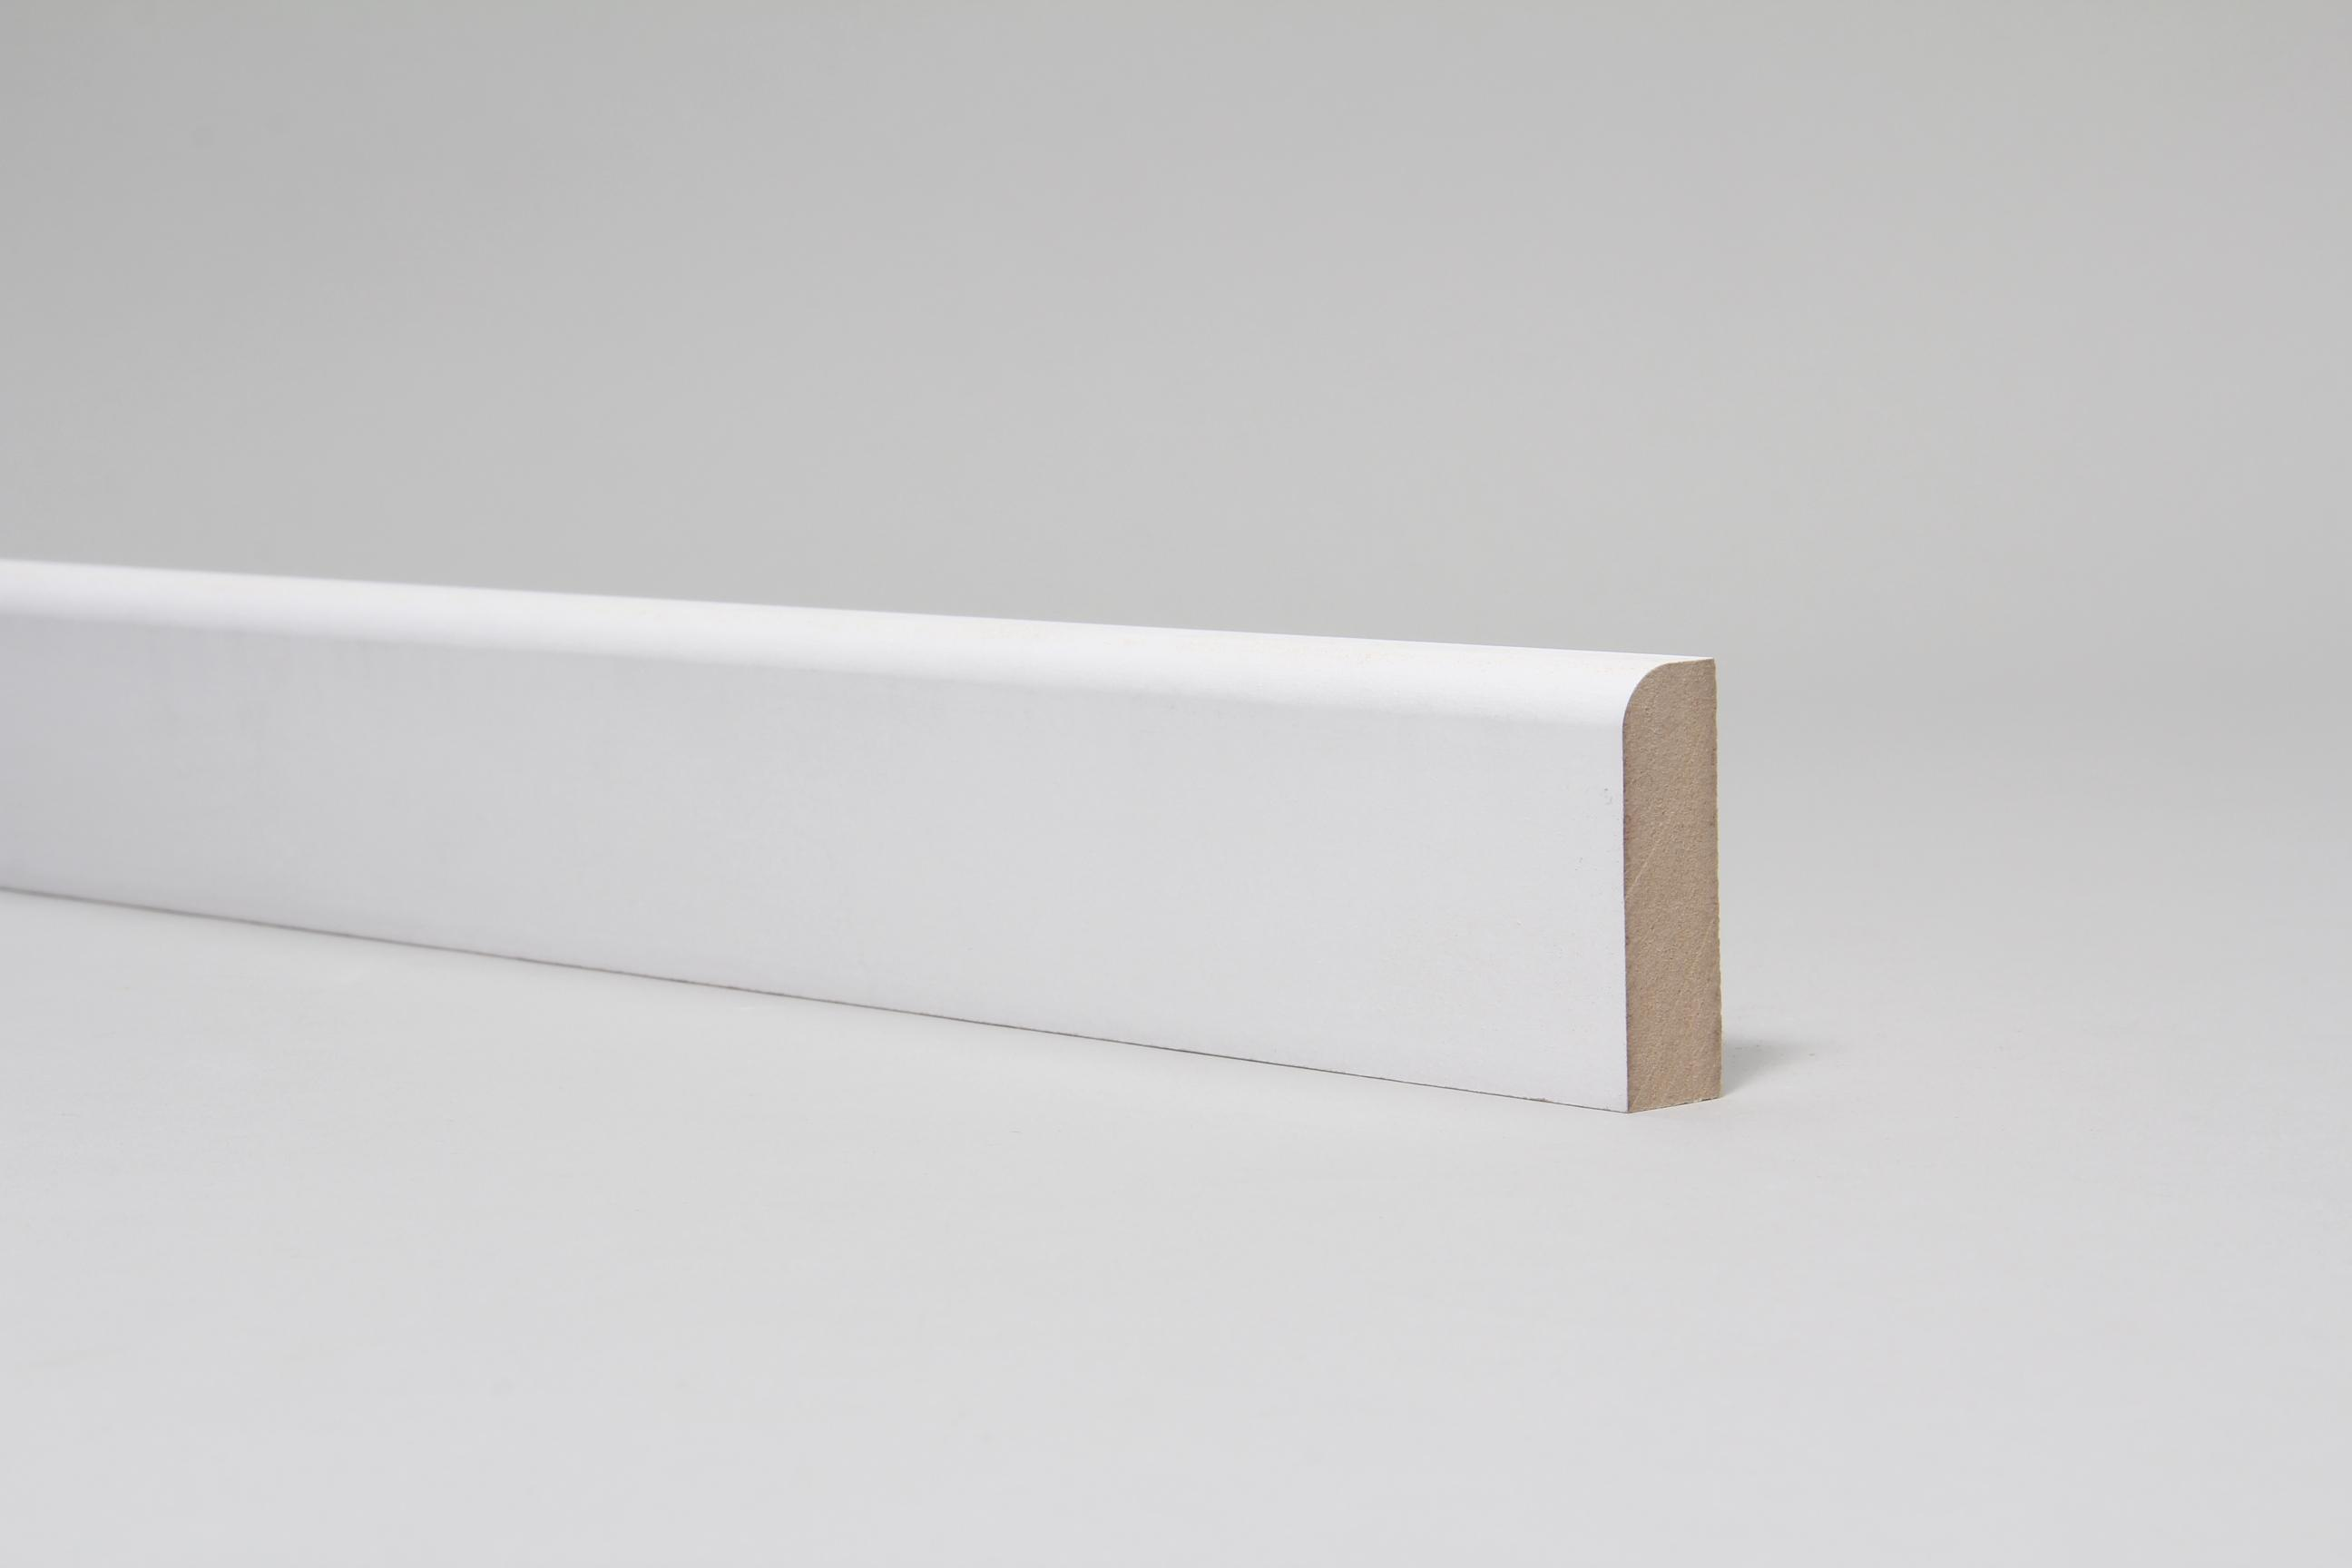 Rounded One Edge 18mm x 57mm x 4.4 Mtr Primed